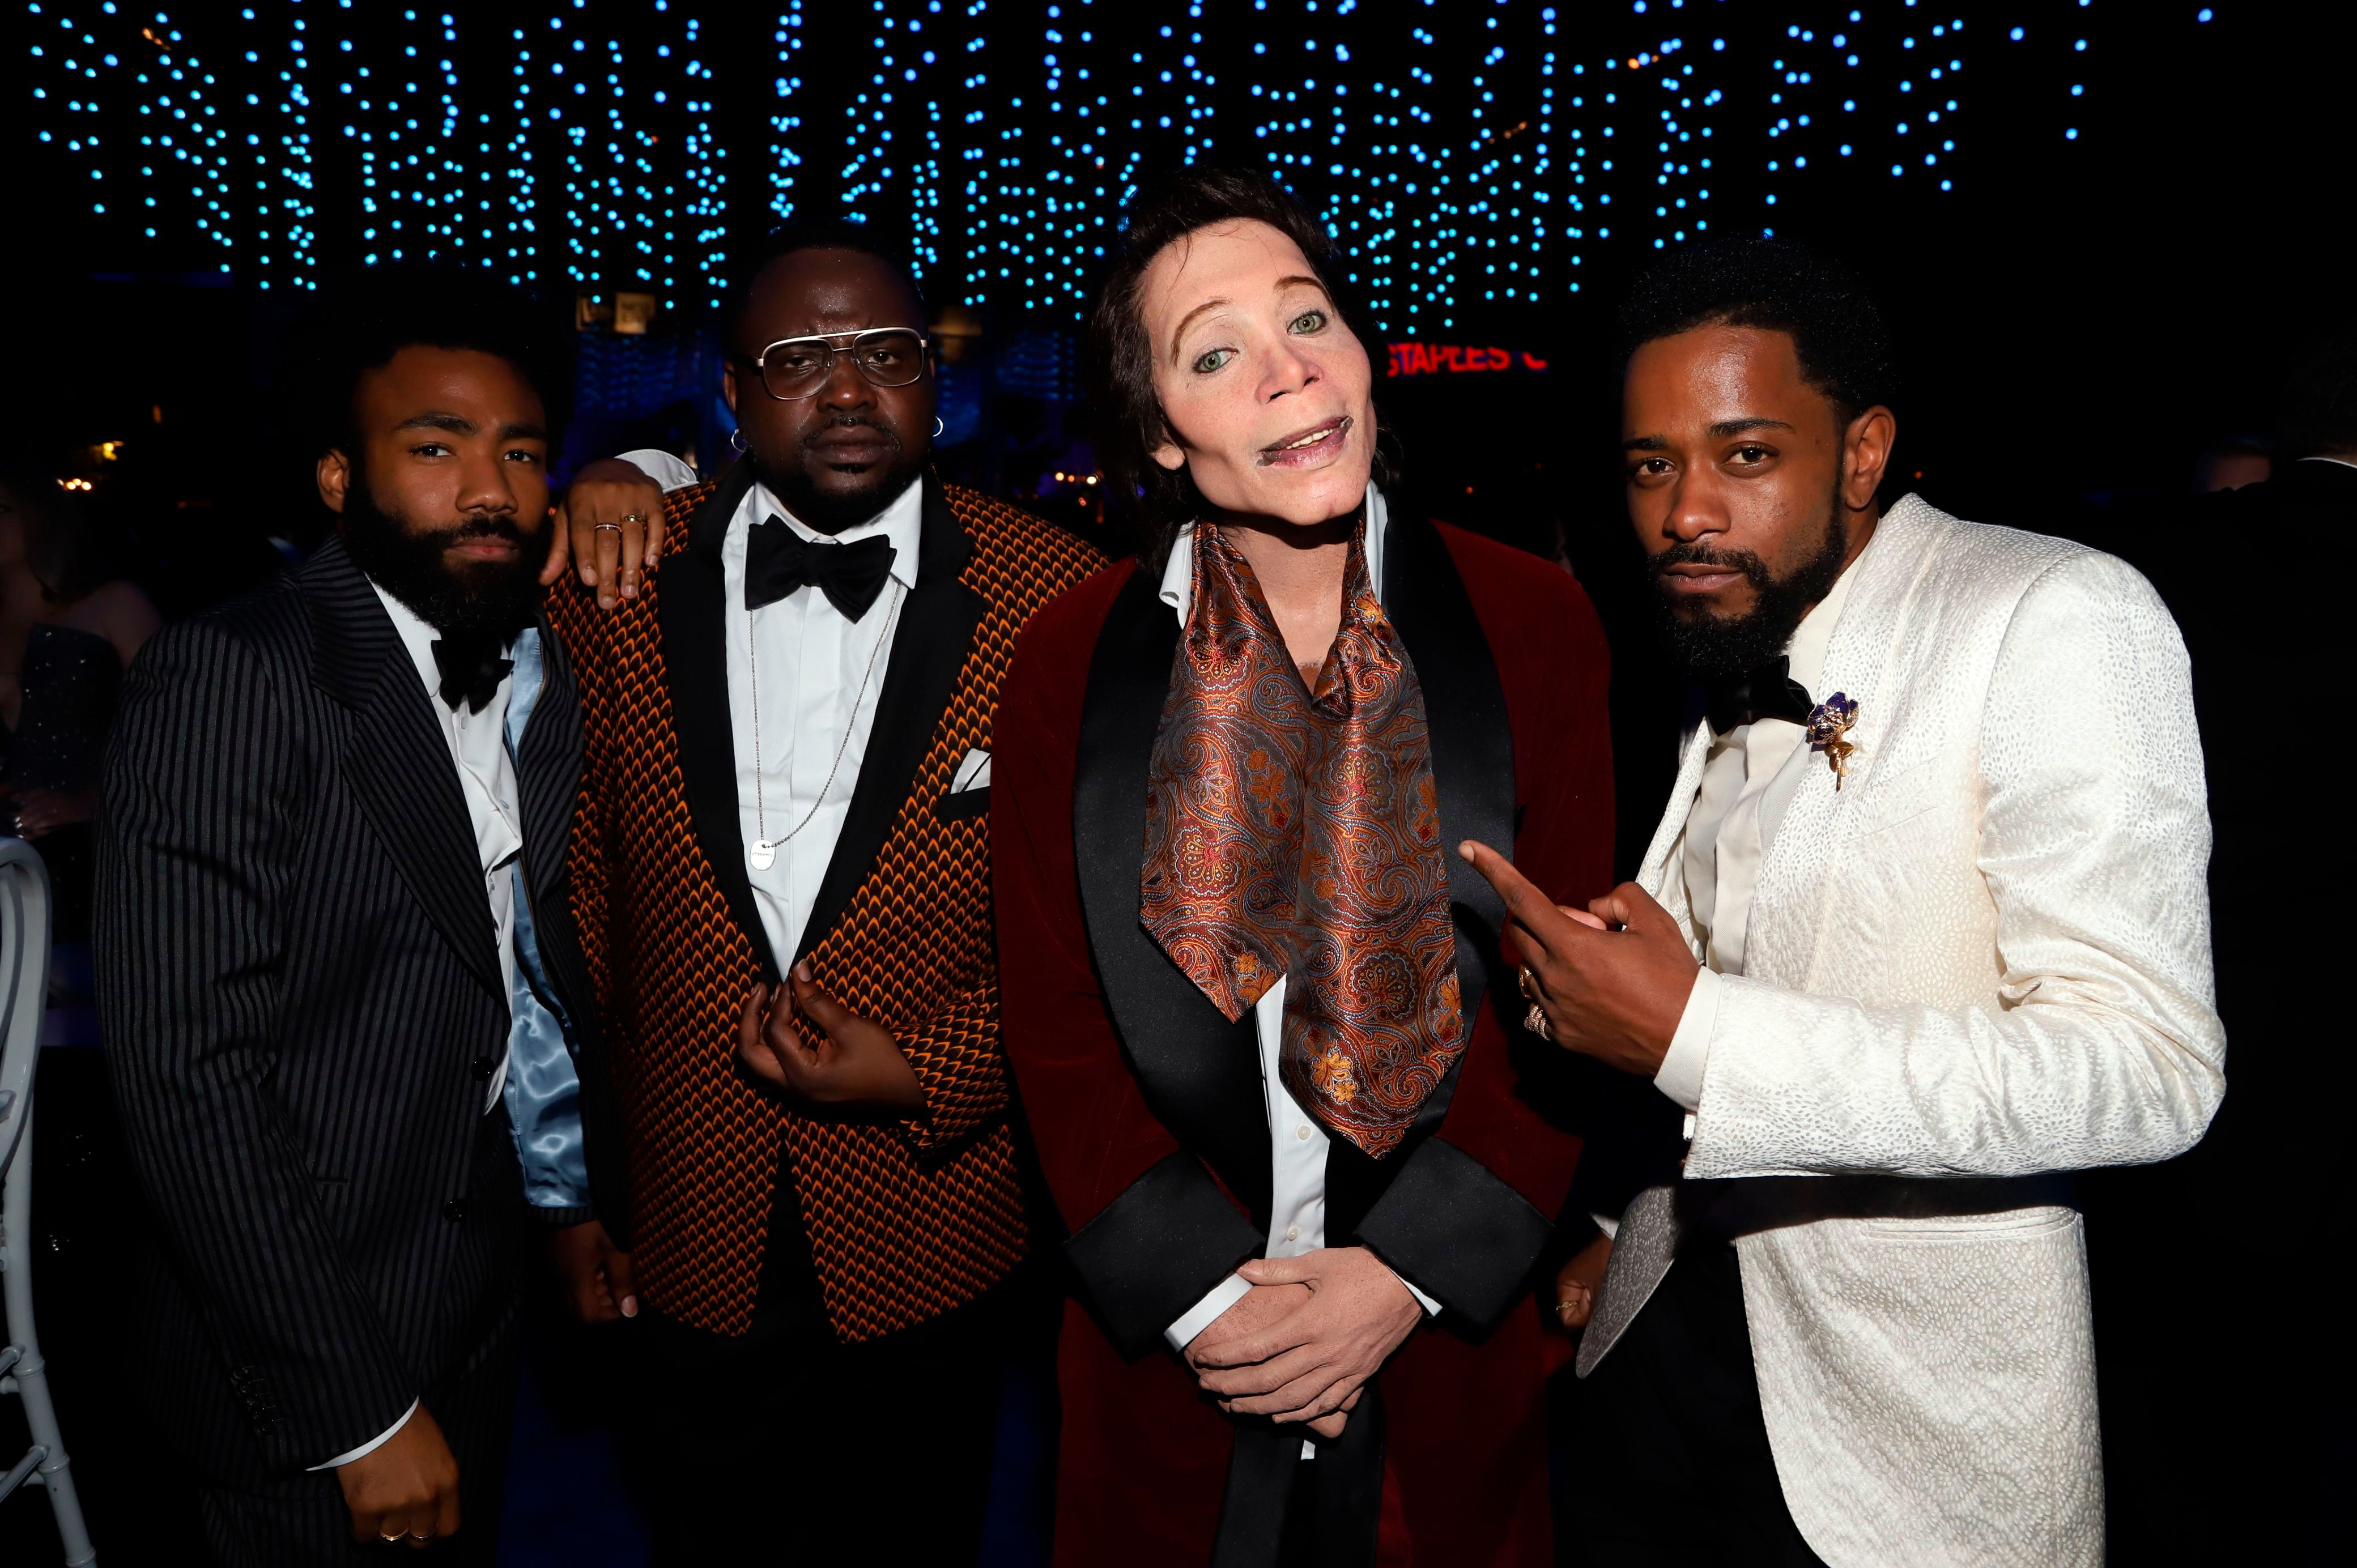 "Donald Glover, Brian Tyree Henry, Teddy Perkins, Lakeith Stanfield. Donald Glover, Brian Tyree Henry, ""Teddy Perkins"" and Lakeith Stanfield attend the Governors Ball for the 70th Primetime Emmy Awards, at the Microsoft Theater in Los Angeles70th Primetime Emmy Awards - Governors Ball, Los Angeles, USA - 17 Sep 2018"